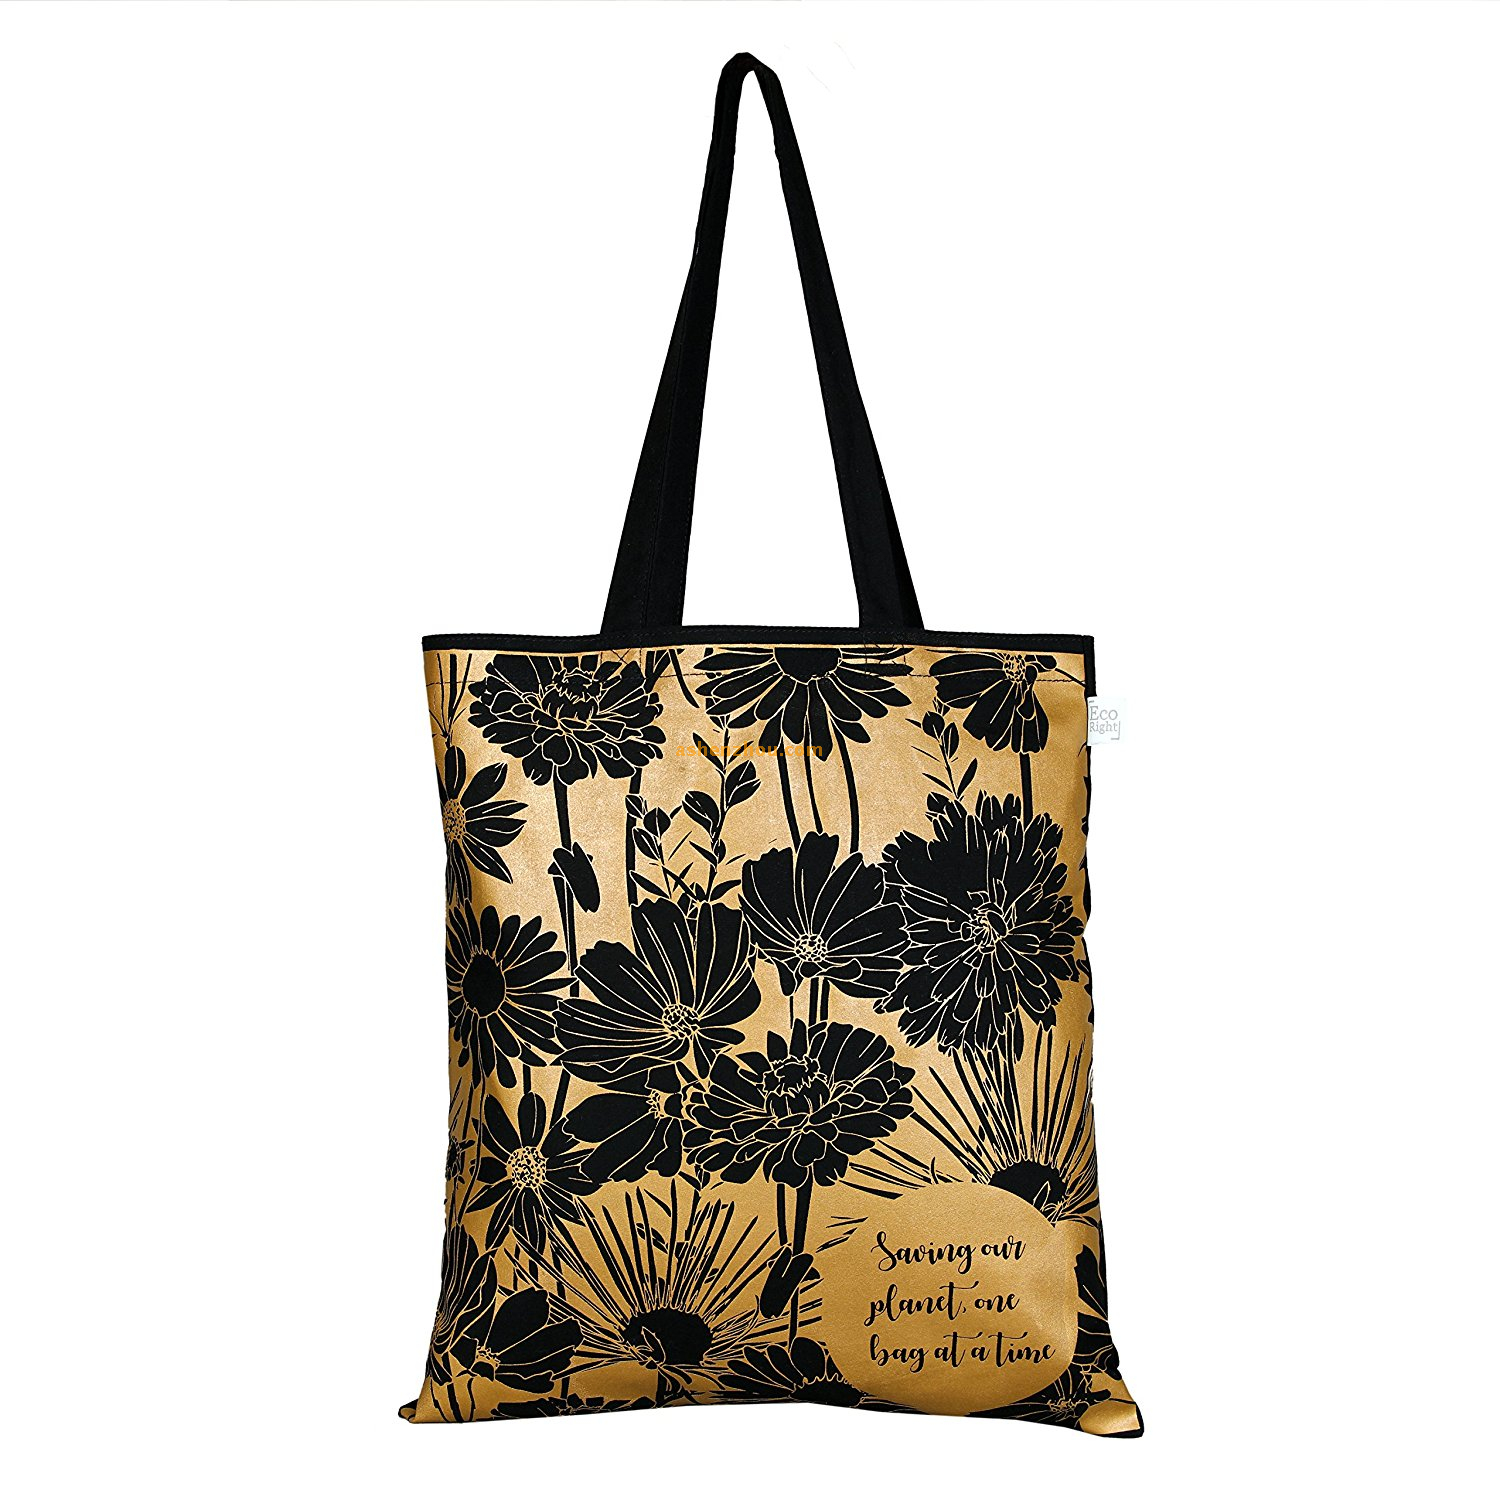 Factory supply wholesale custom High Quality personalized cotton fabric tote bags printing with zipper for shopping